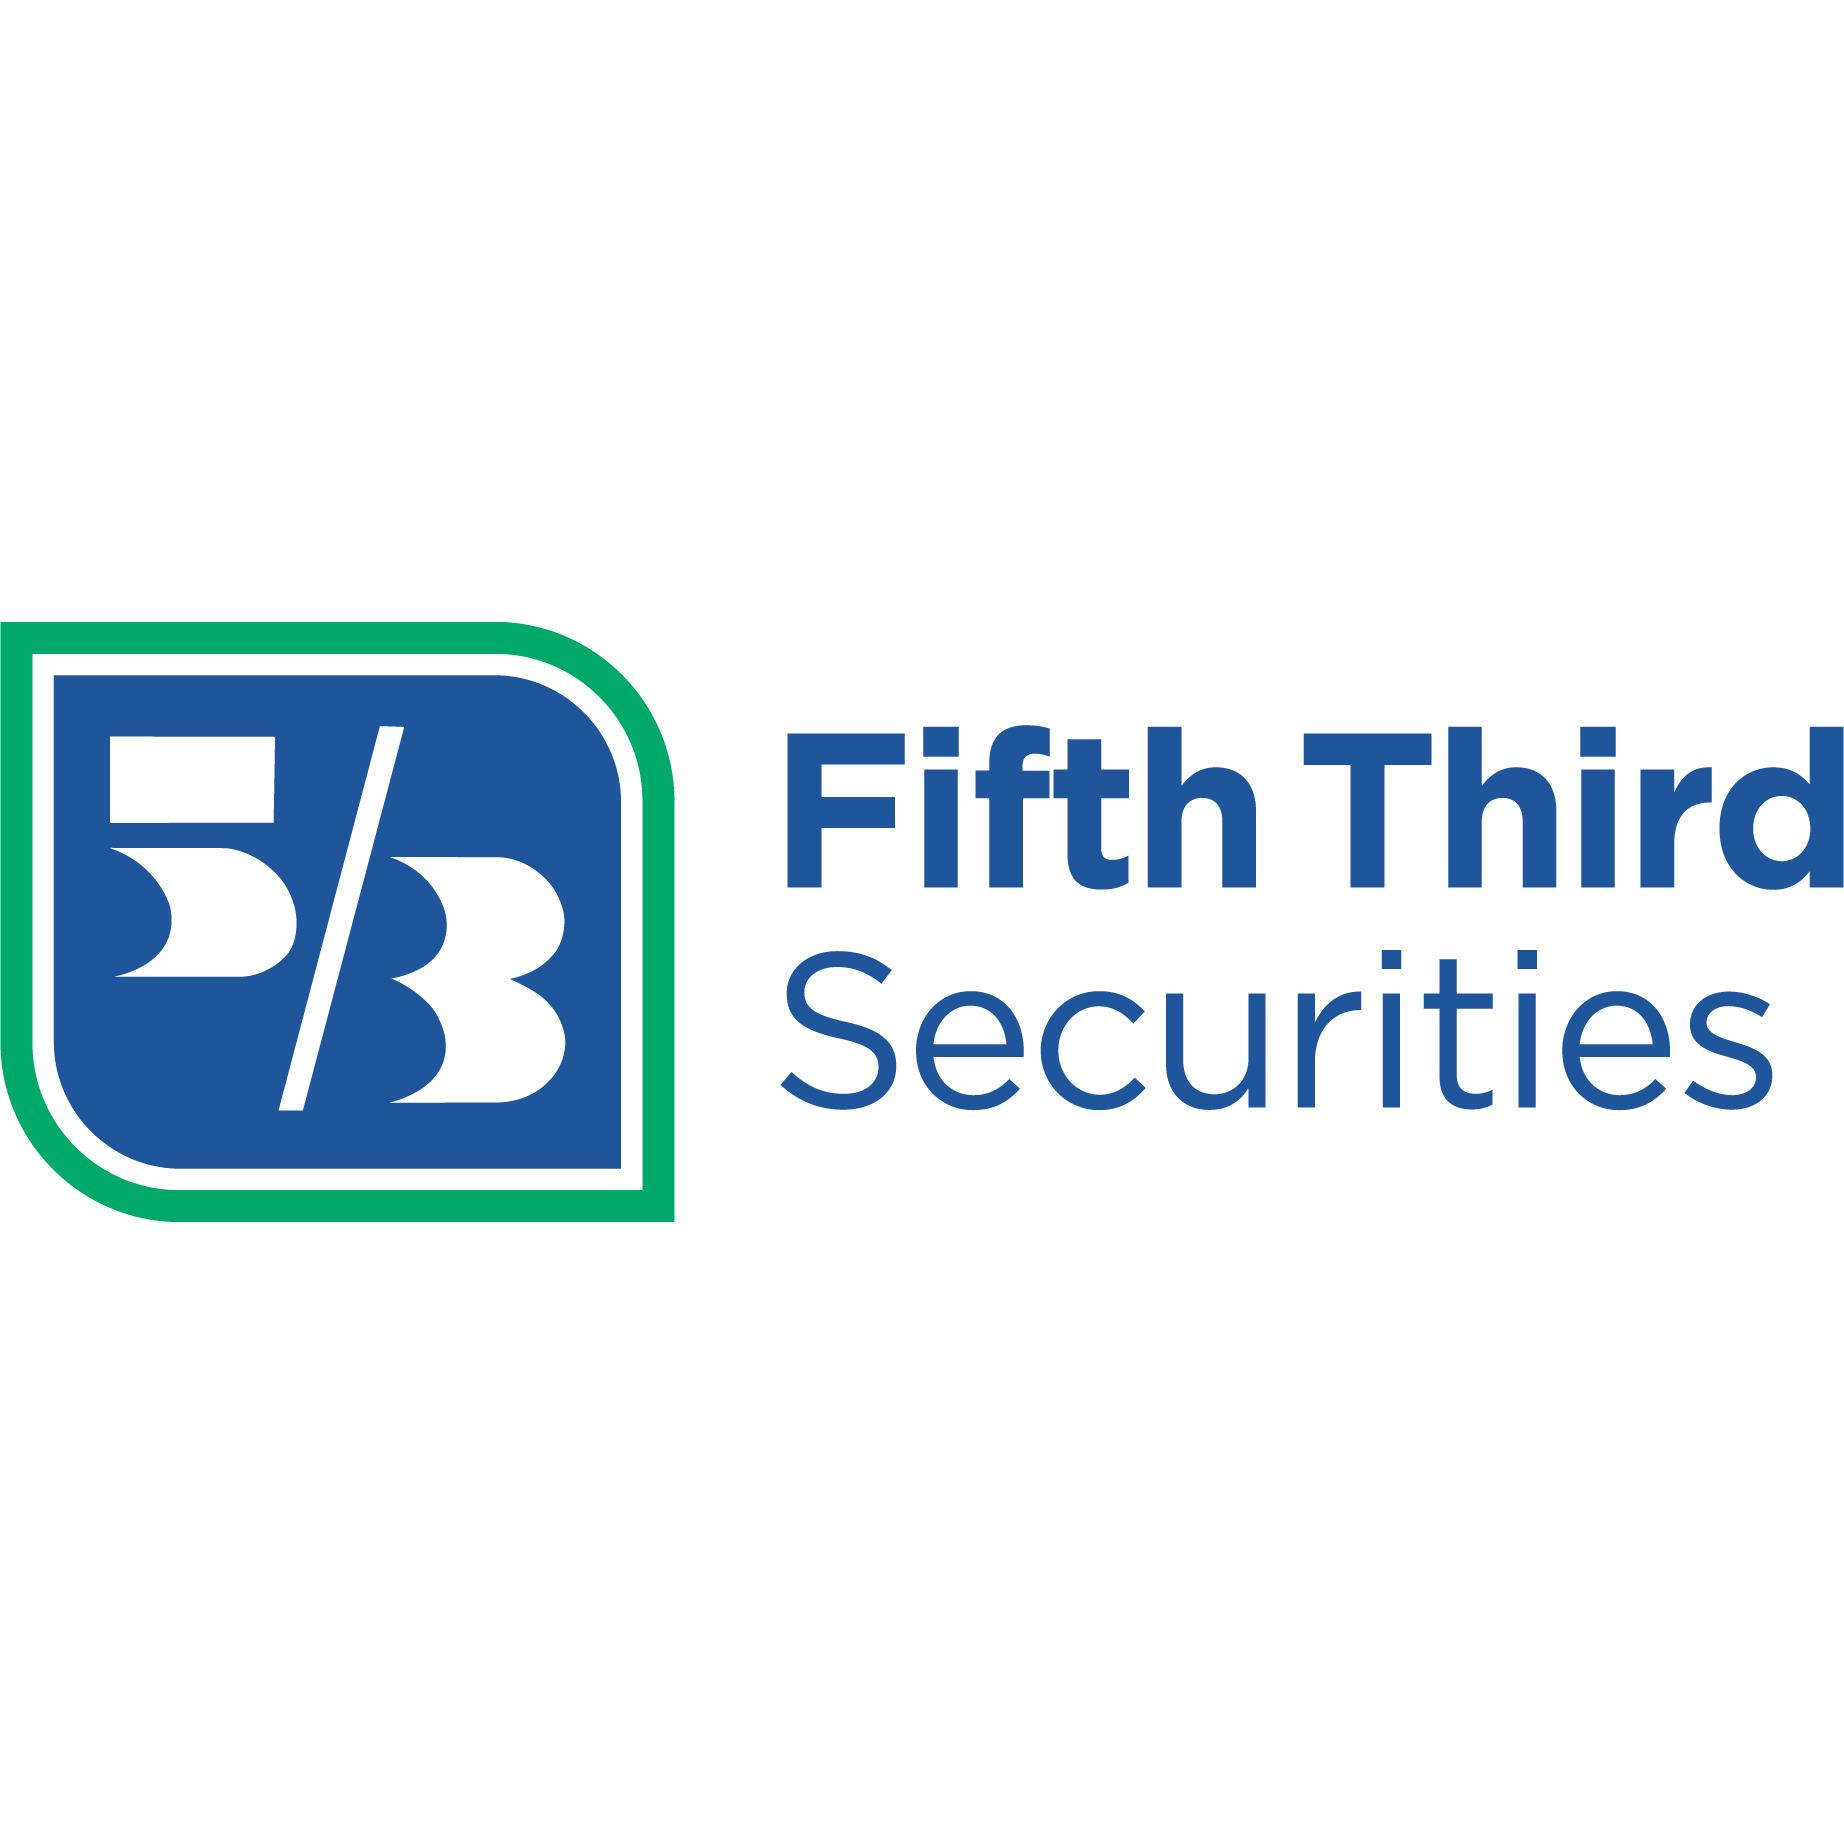 Fifth Third Securities - Christopher Crull | Financial Advisor in Orland Park,Illinois